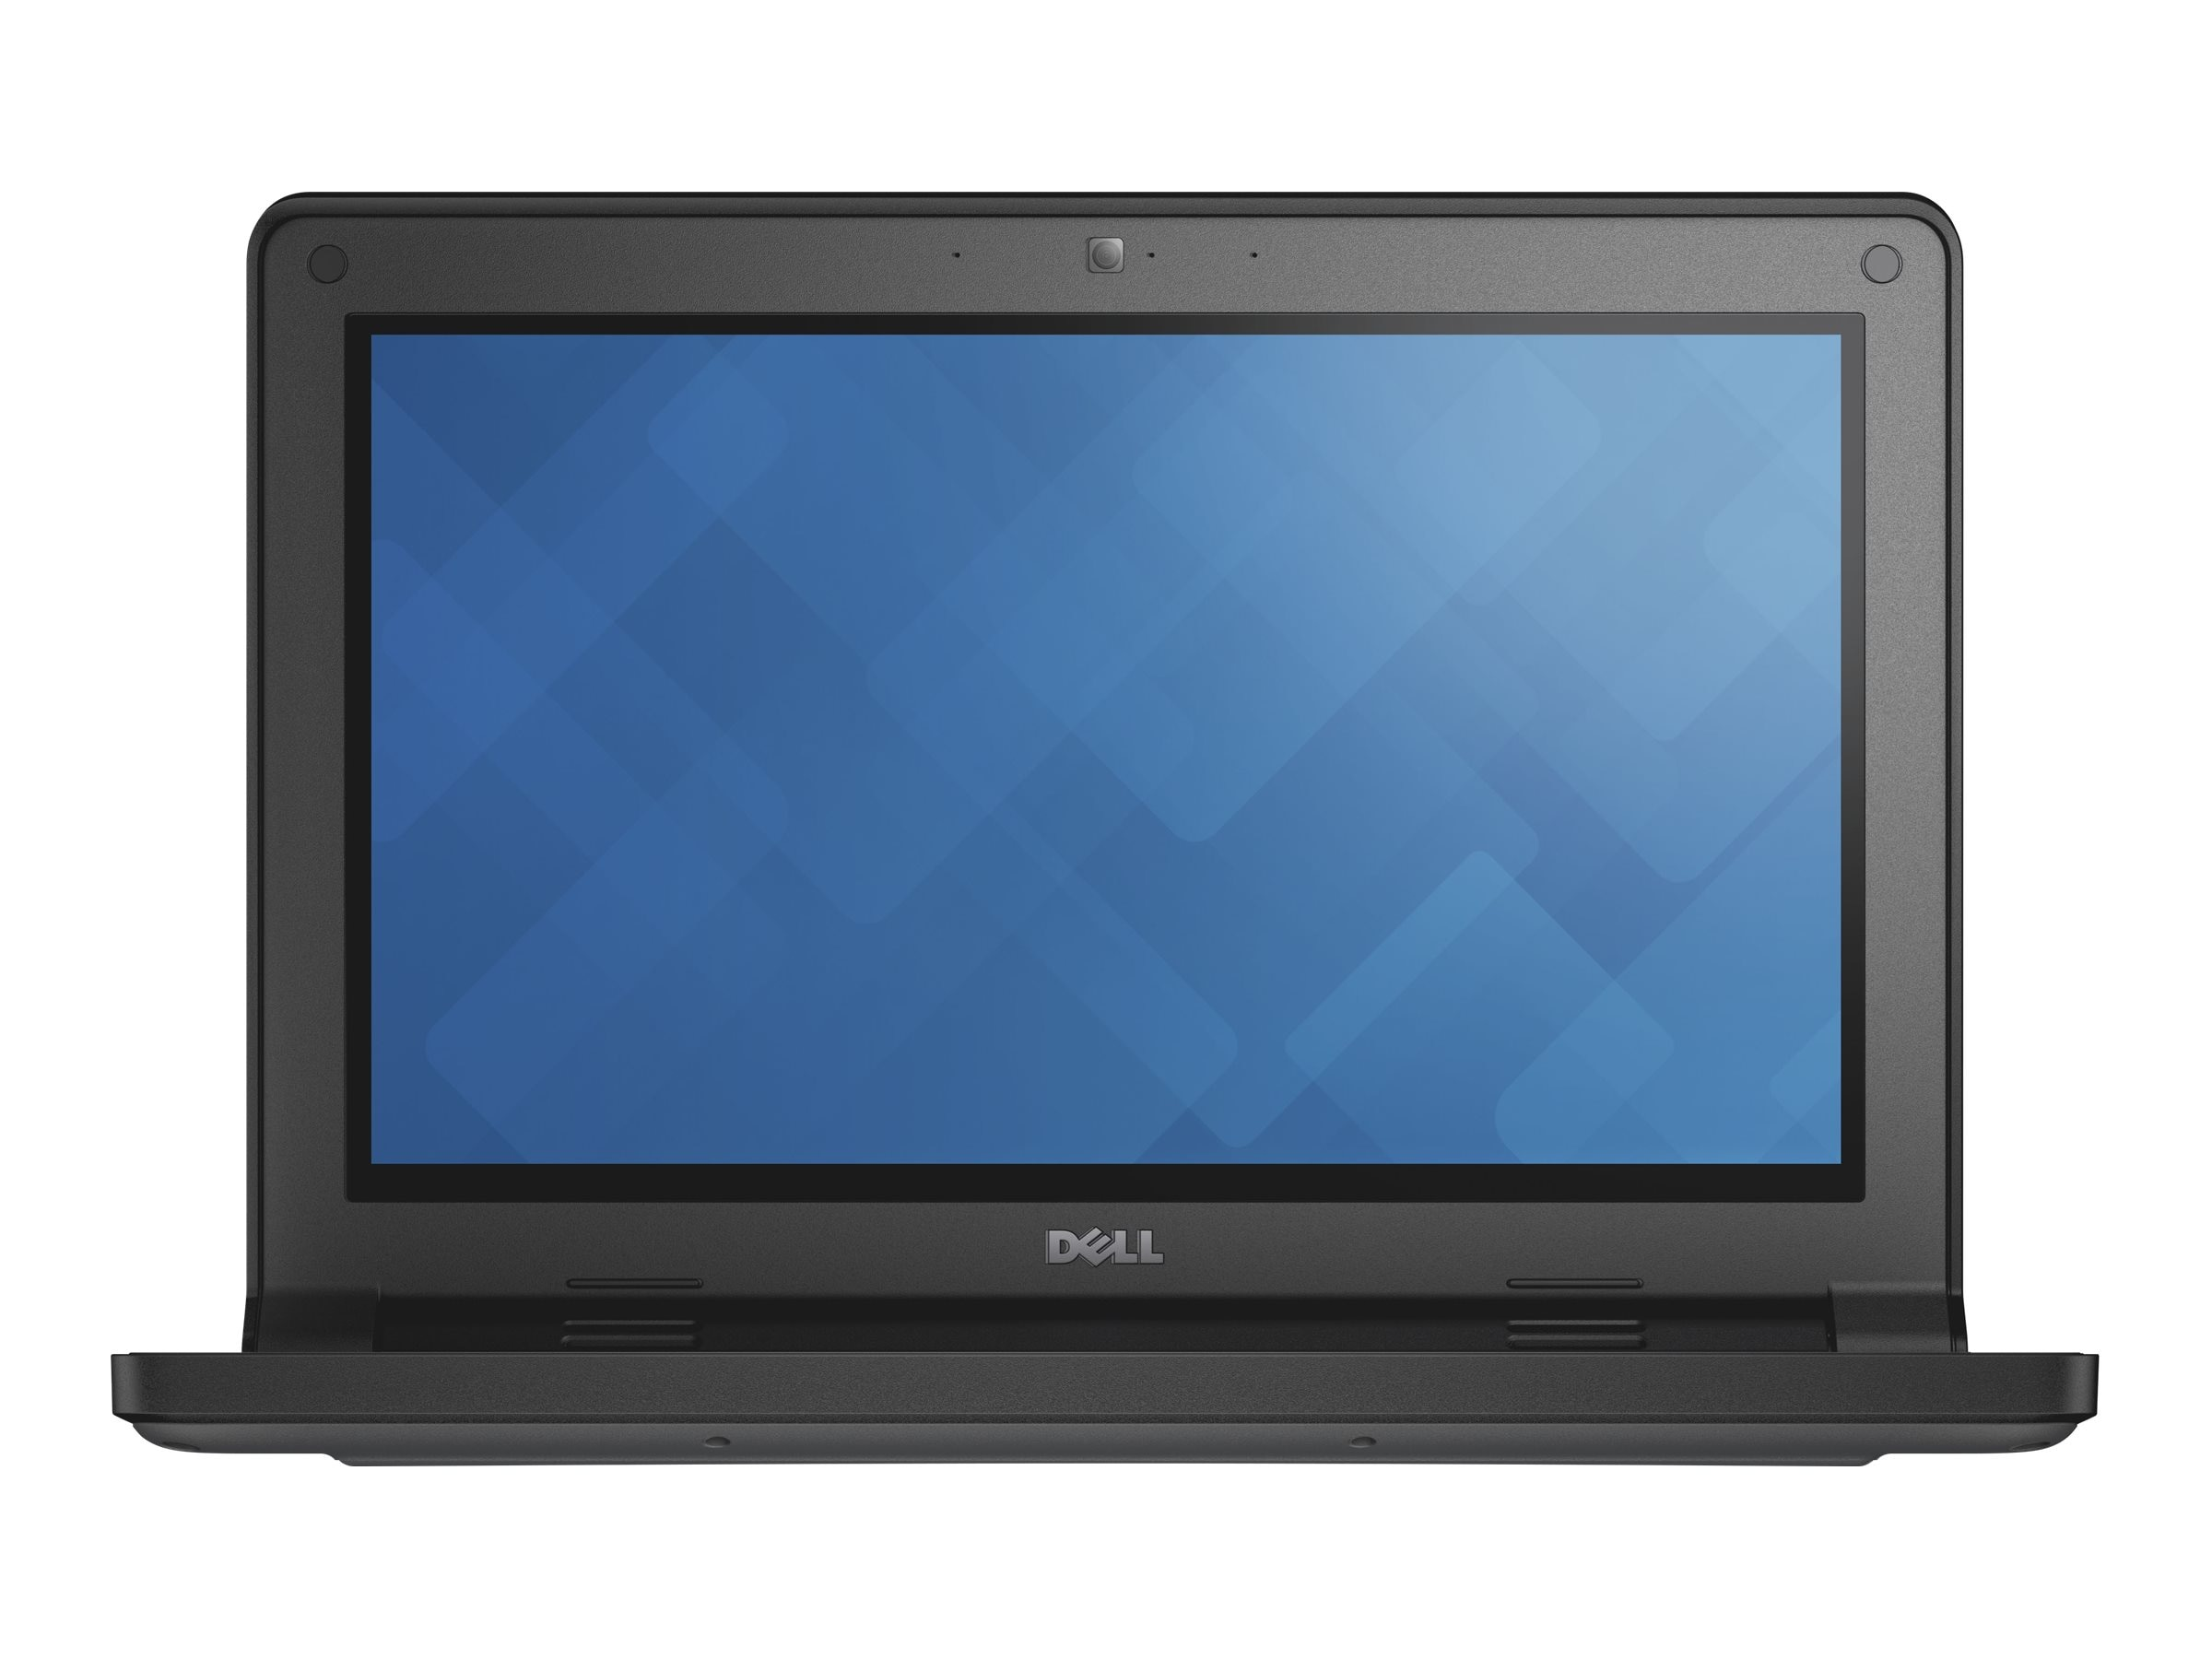 Dell LAT3160-1333BLK Image 1